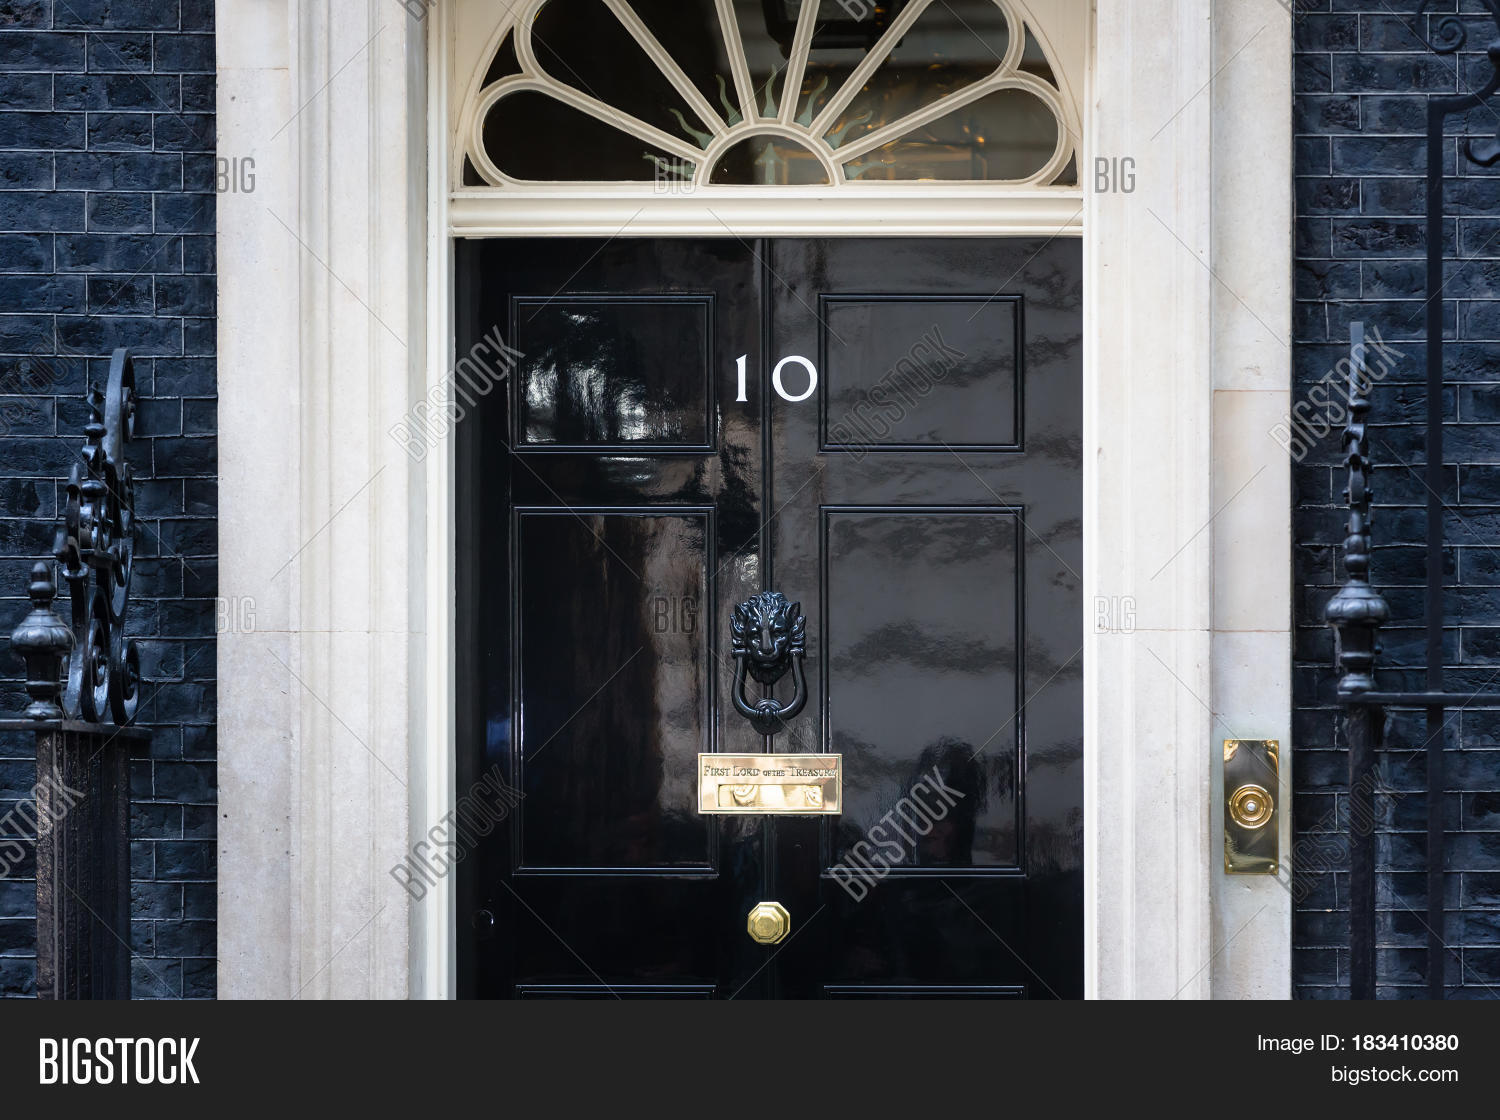 Glamorous 10 Downing Street London Front Door Contemporary - Image ...